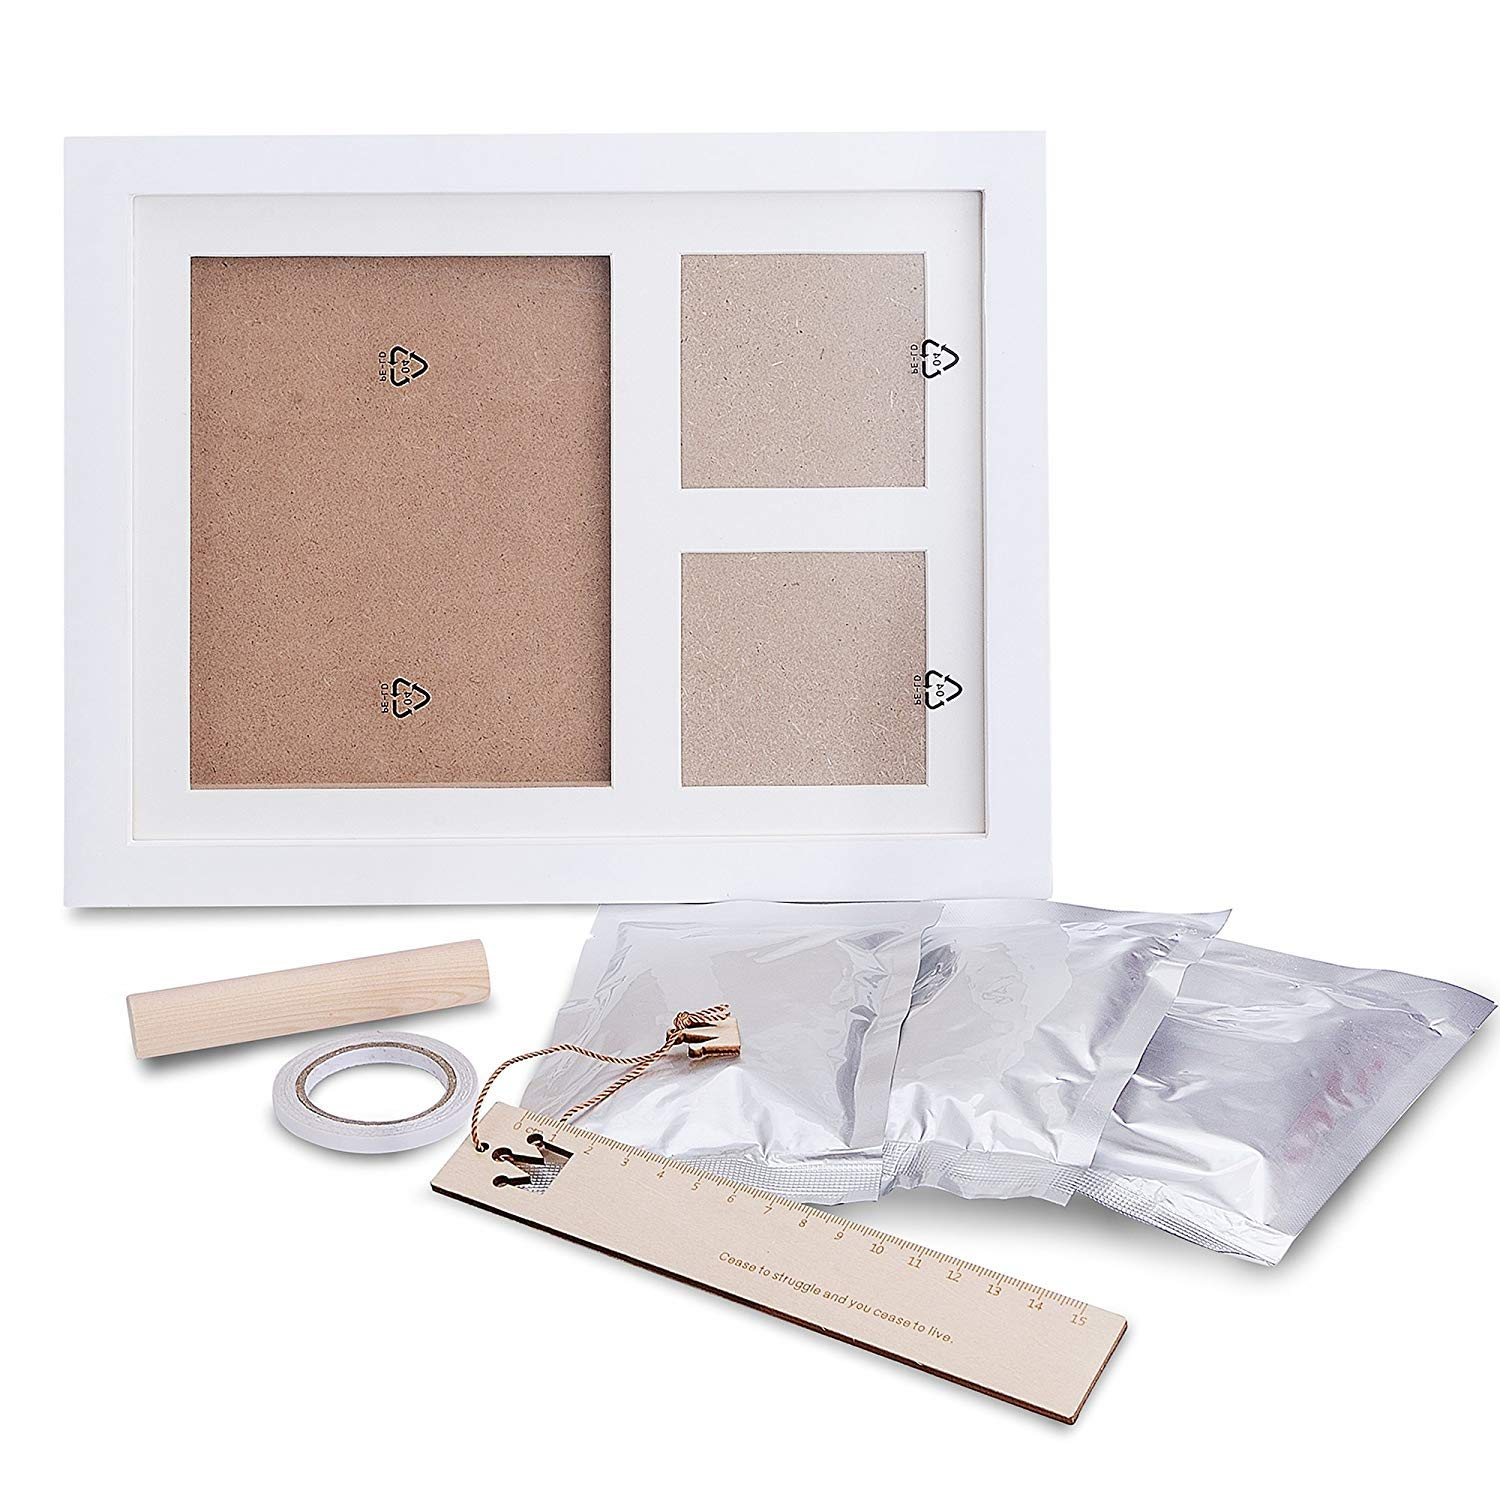 Non Toxic and Safe Clay Solid Wood Photo Frame with Safe Acrylic Front Makes A Perfect Baby Boy//Girl Shower Gifts INNOCHEER Baby Handprint and Footprint Frame Kit